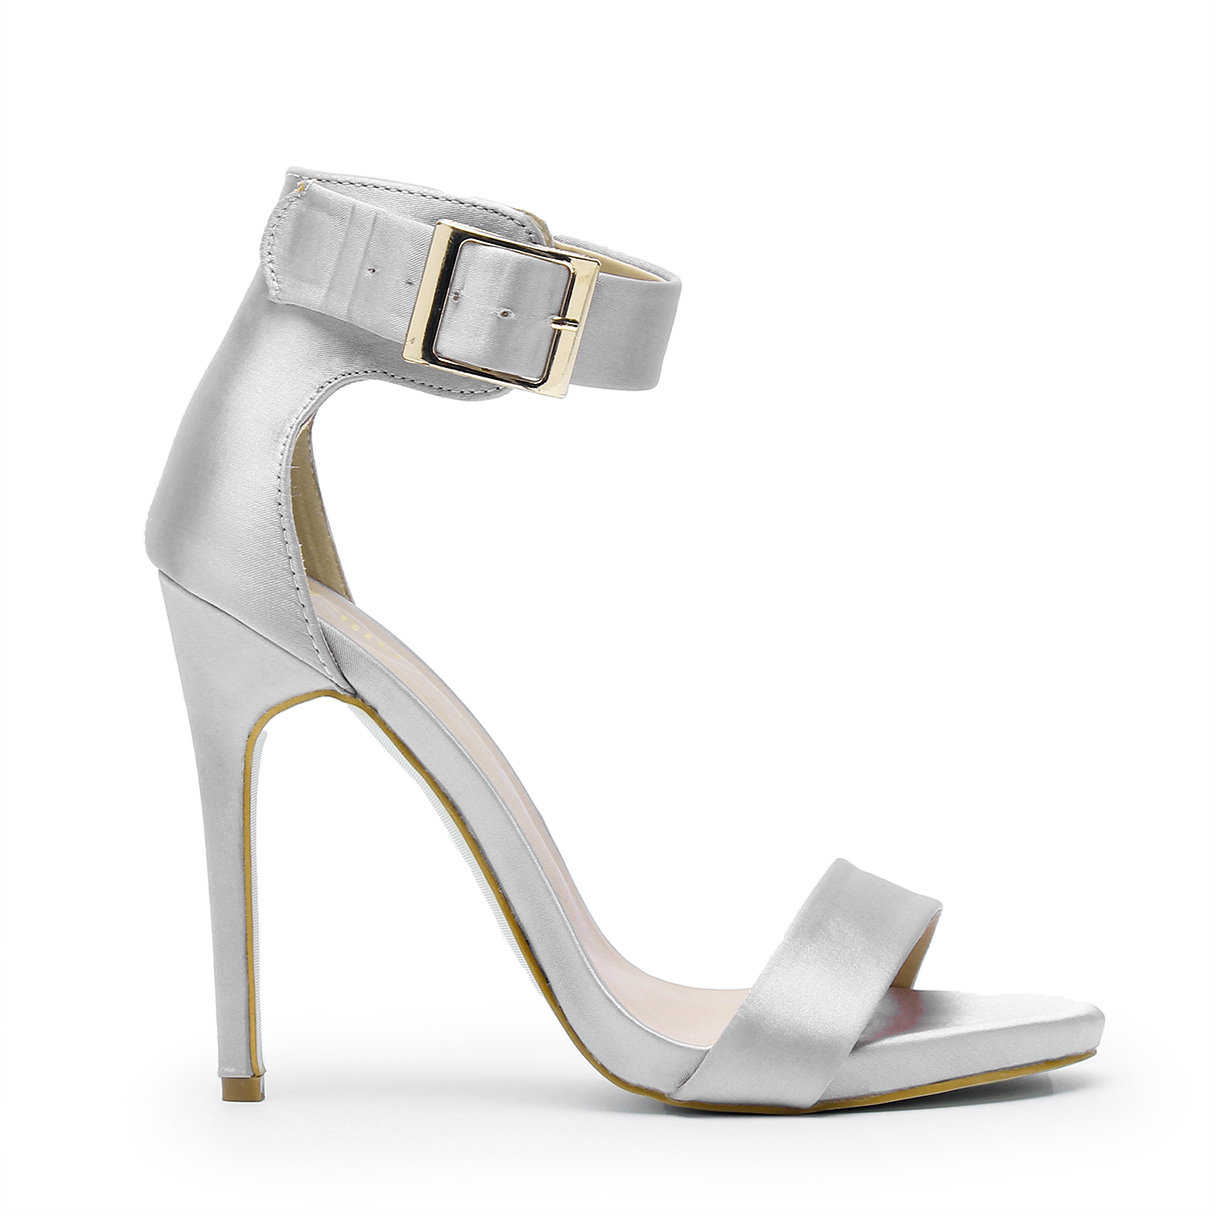 Silver Stiletto Sandals with Ankle Strap